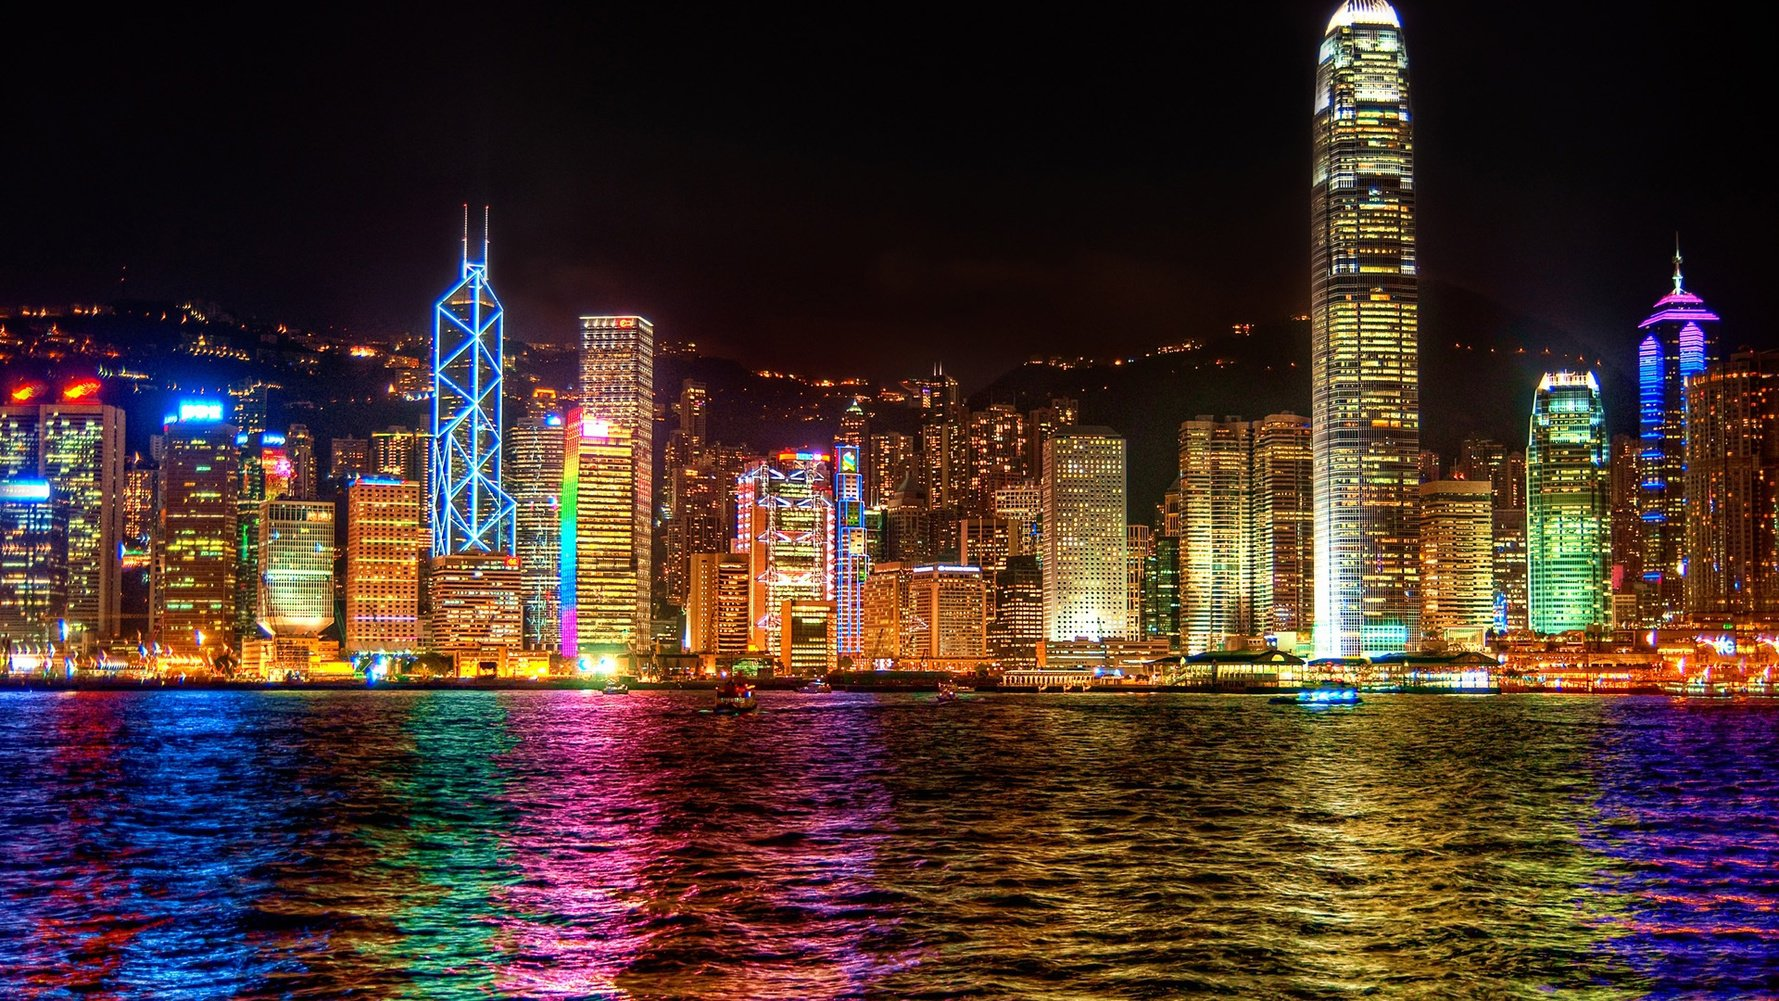 4k-ultra-hd-wallpaper-Hong-Kong-unabuenaidea.es (5)